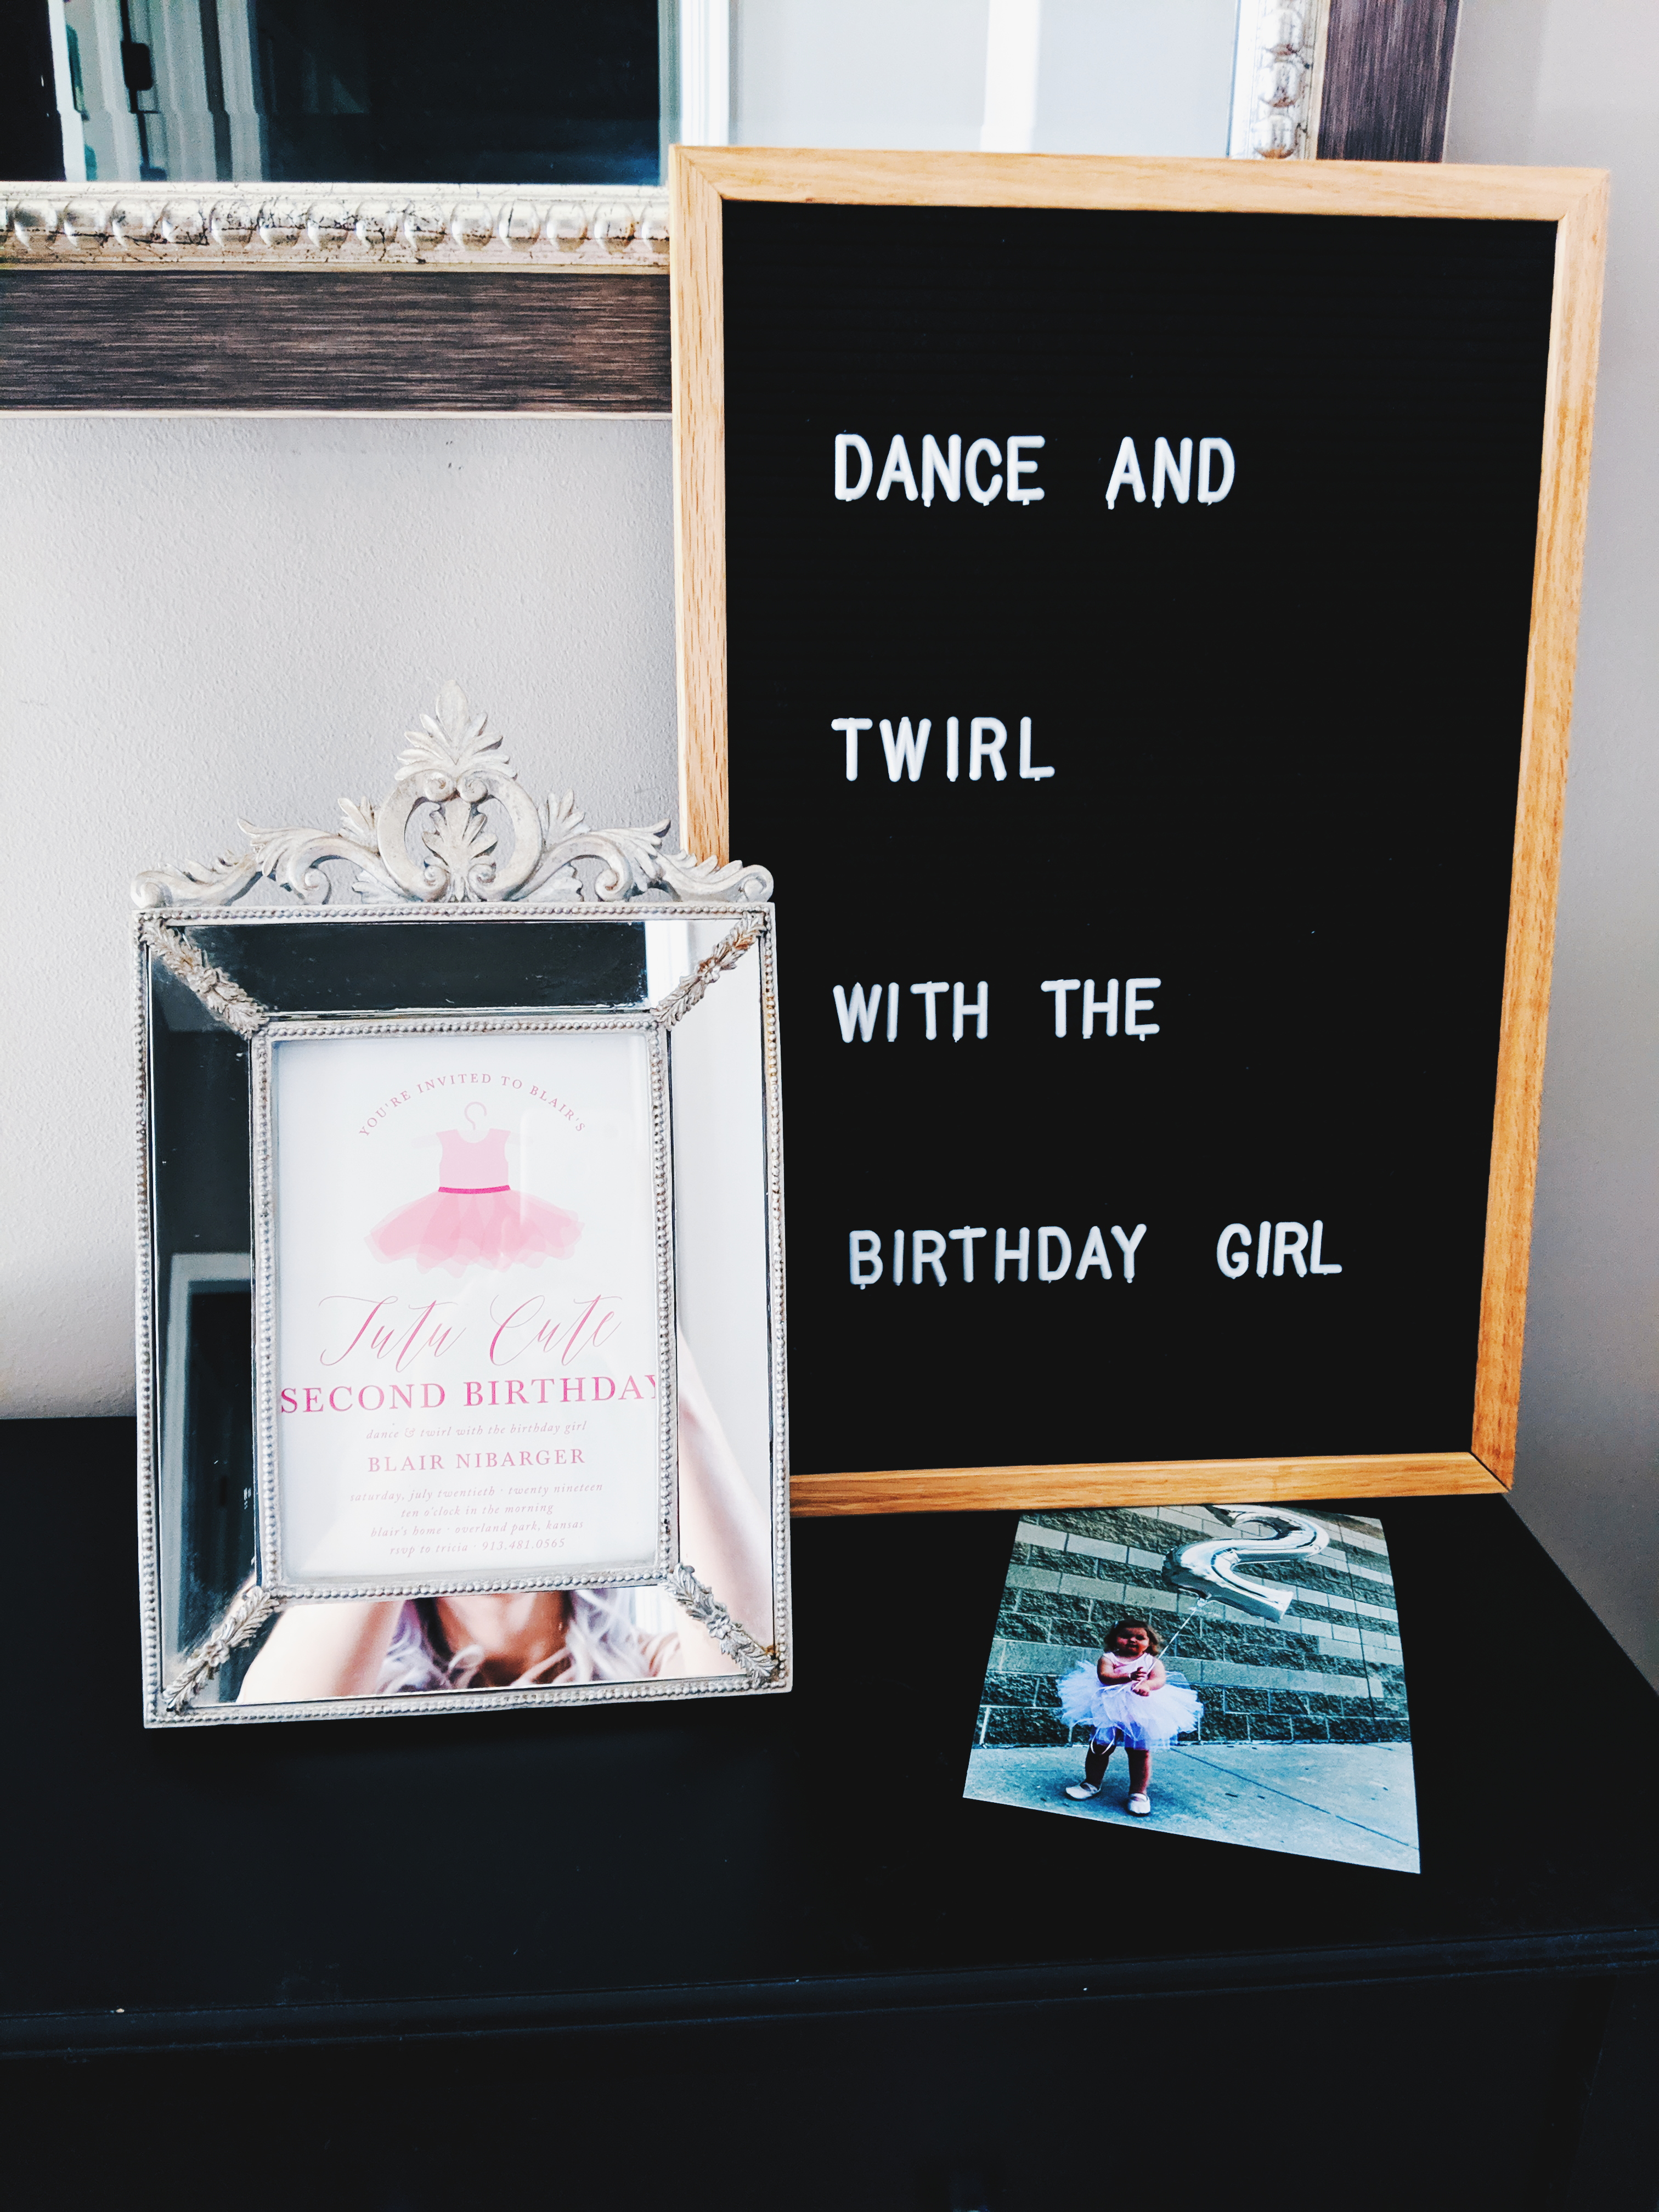 Tutu Cute Birthday Party - 2nd Birthday Party Ideas for Girls. This tutu cute party is perfect for your little dancer! Birthday party ideas for 2 year olds, pink birthday party, little girl birthday party. Two two cute. #tutucute #partyideas #2ndbirthday